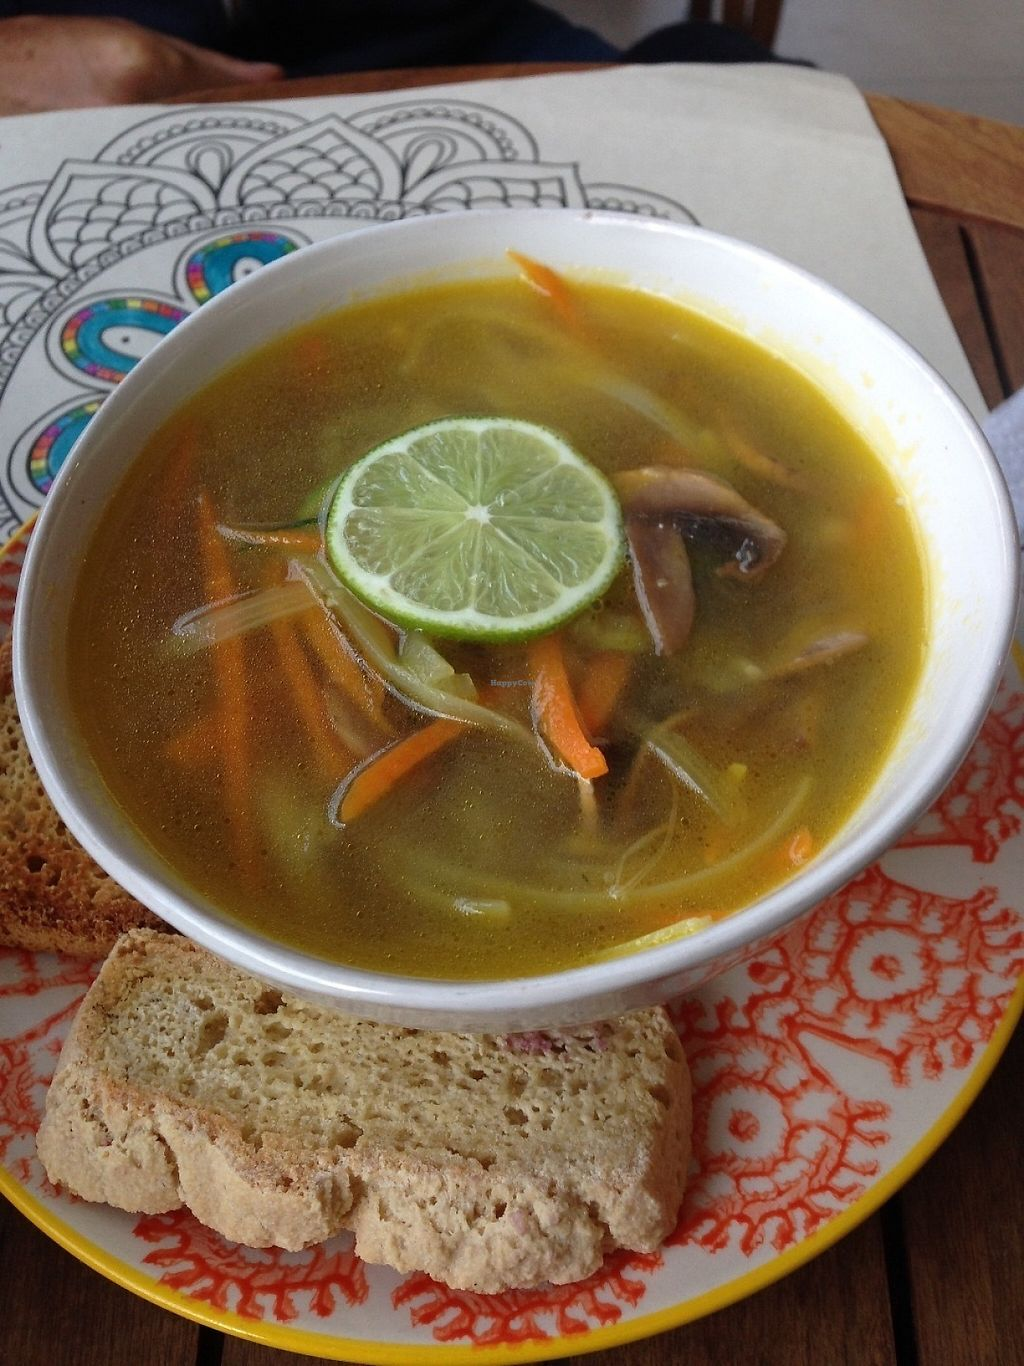 """Photo of RAW  by <a href=""""/members/profile/EmilyNoelle"""">EmilyNoelle</a> <br/>Soup of the day <br/> May 11, 2017  - <a href='/contact/abuse/image/75996/257945'>Report</a>"""